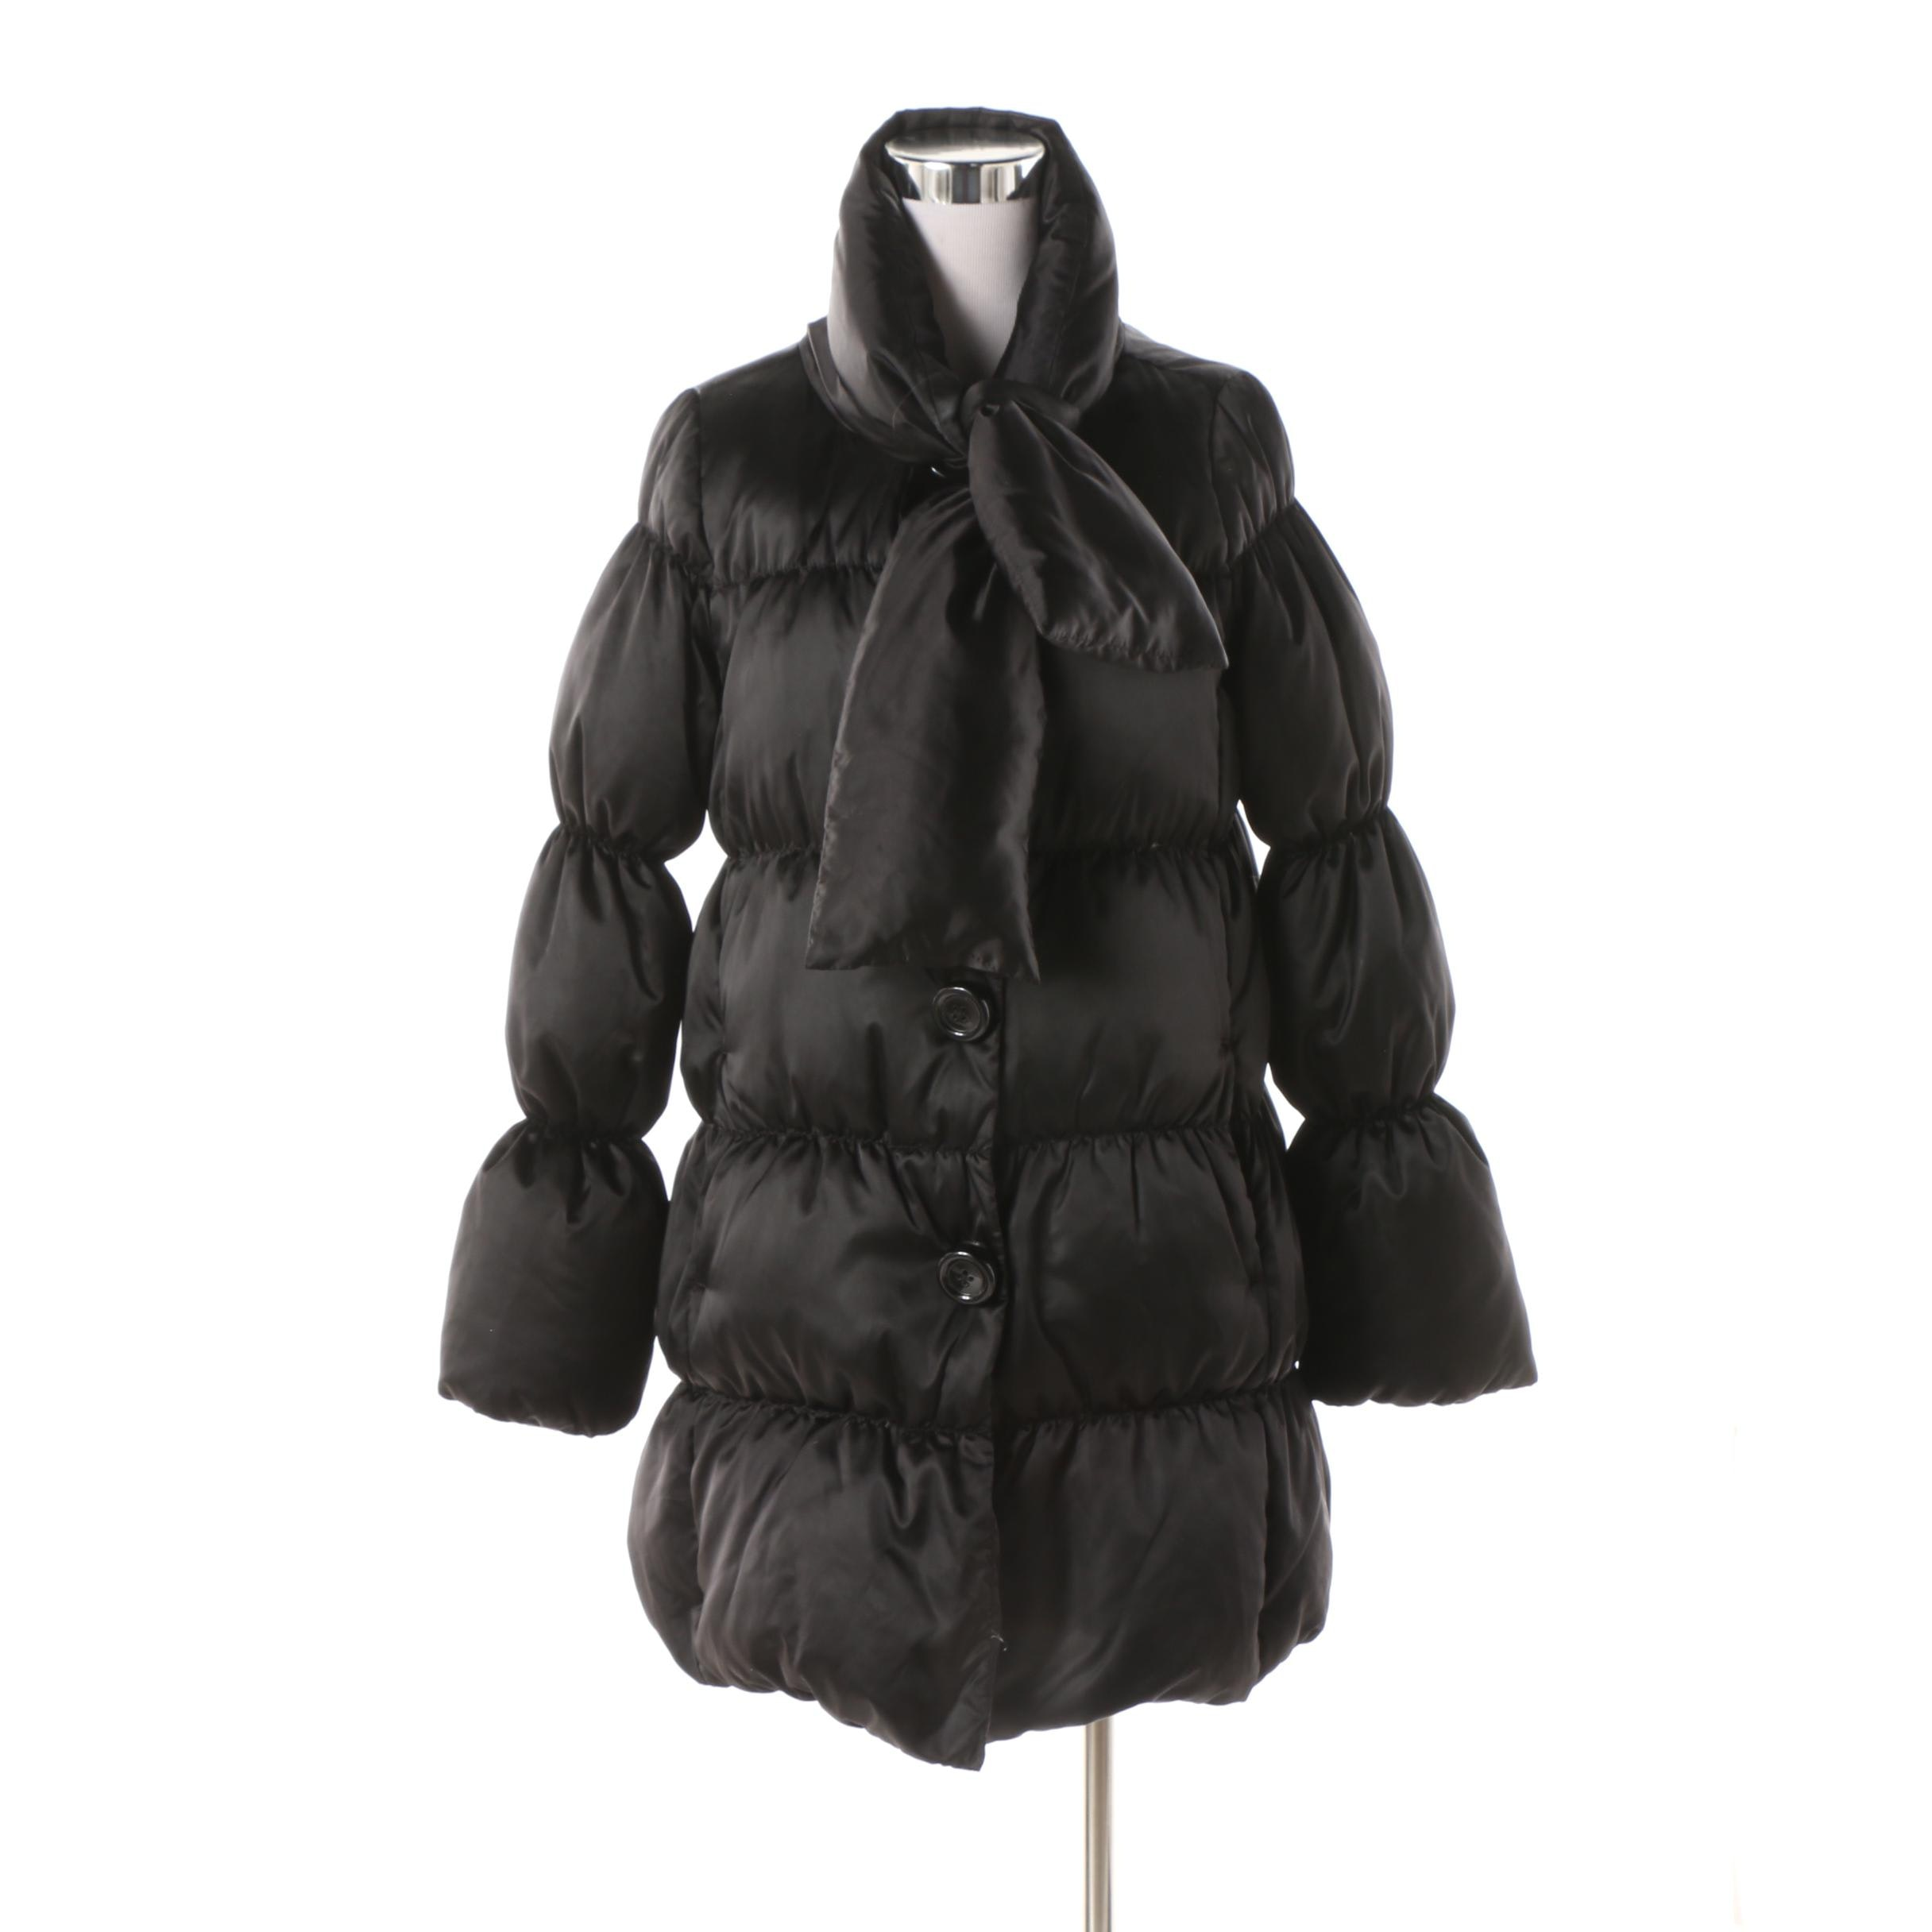 Kate Spade New York Black Puffer Coat with Polka Dot Lining